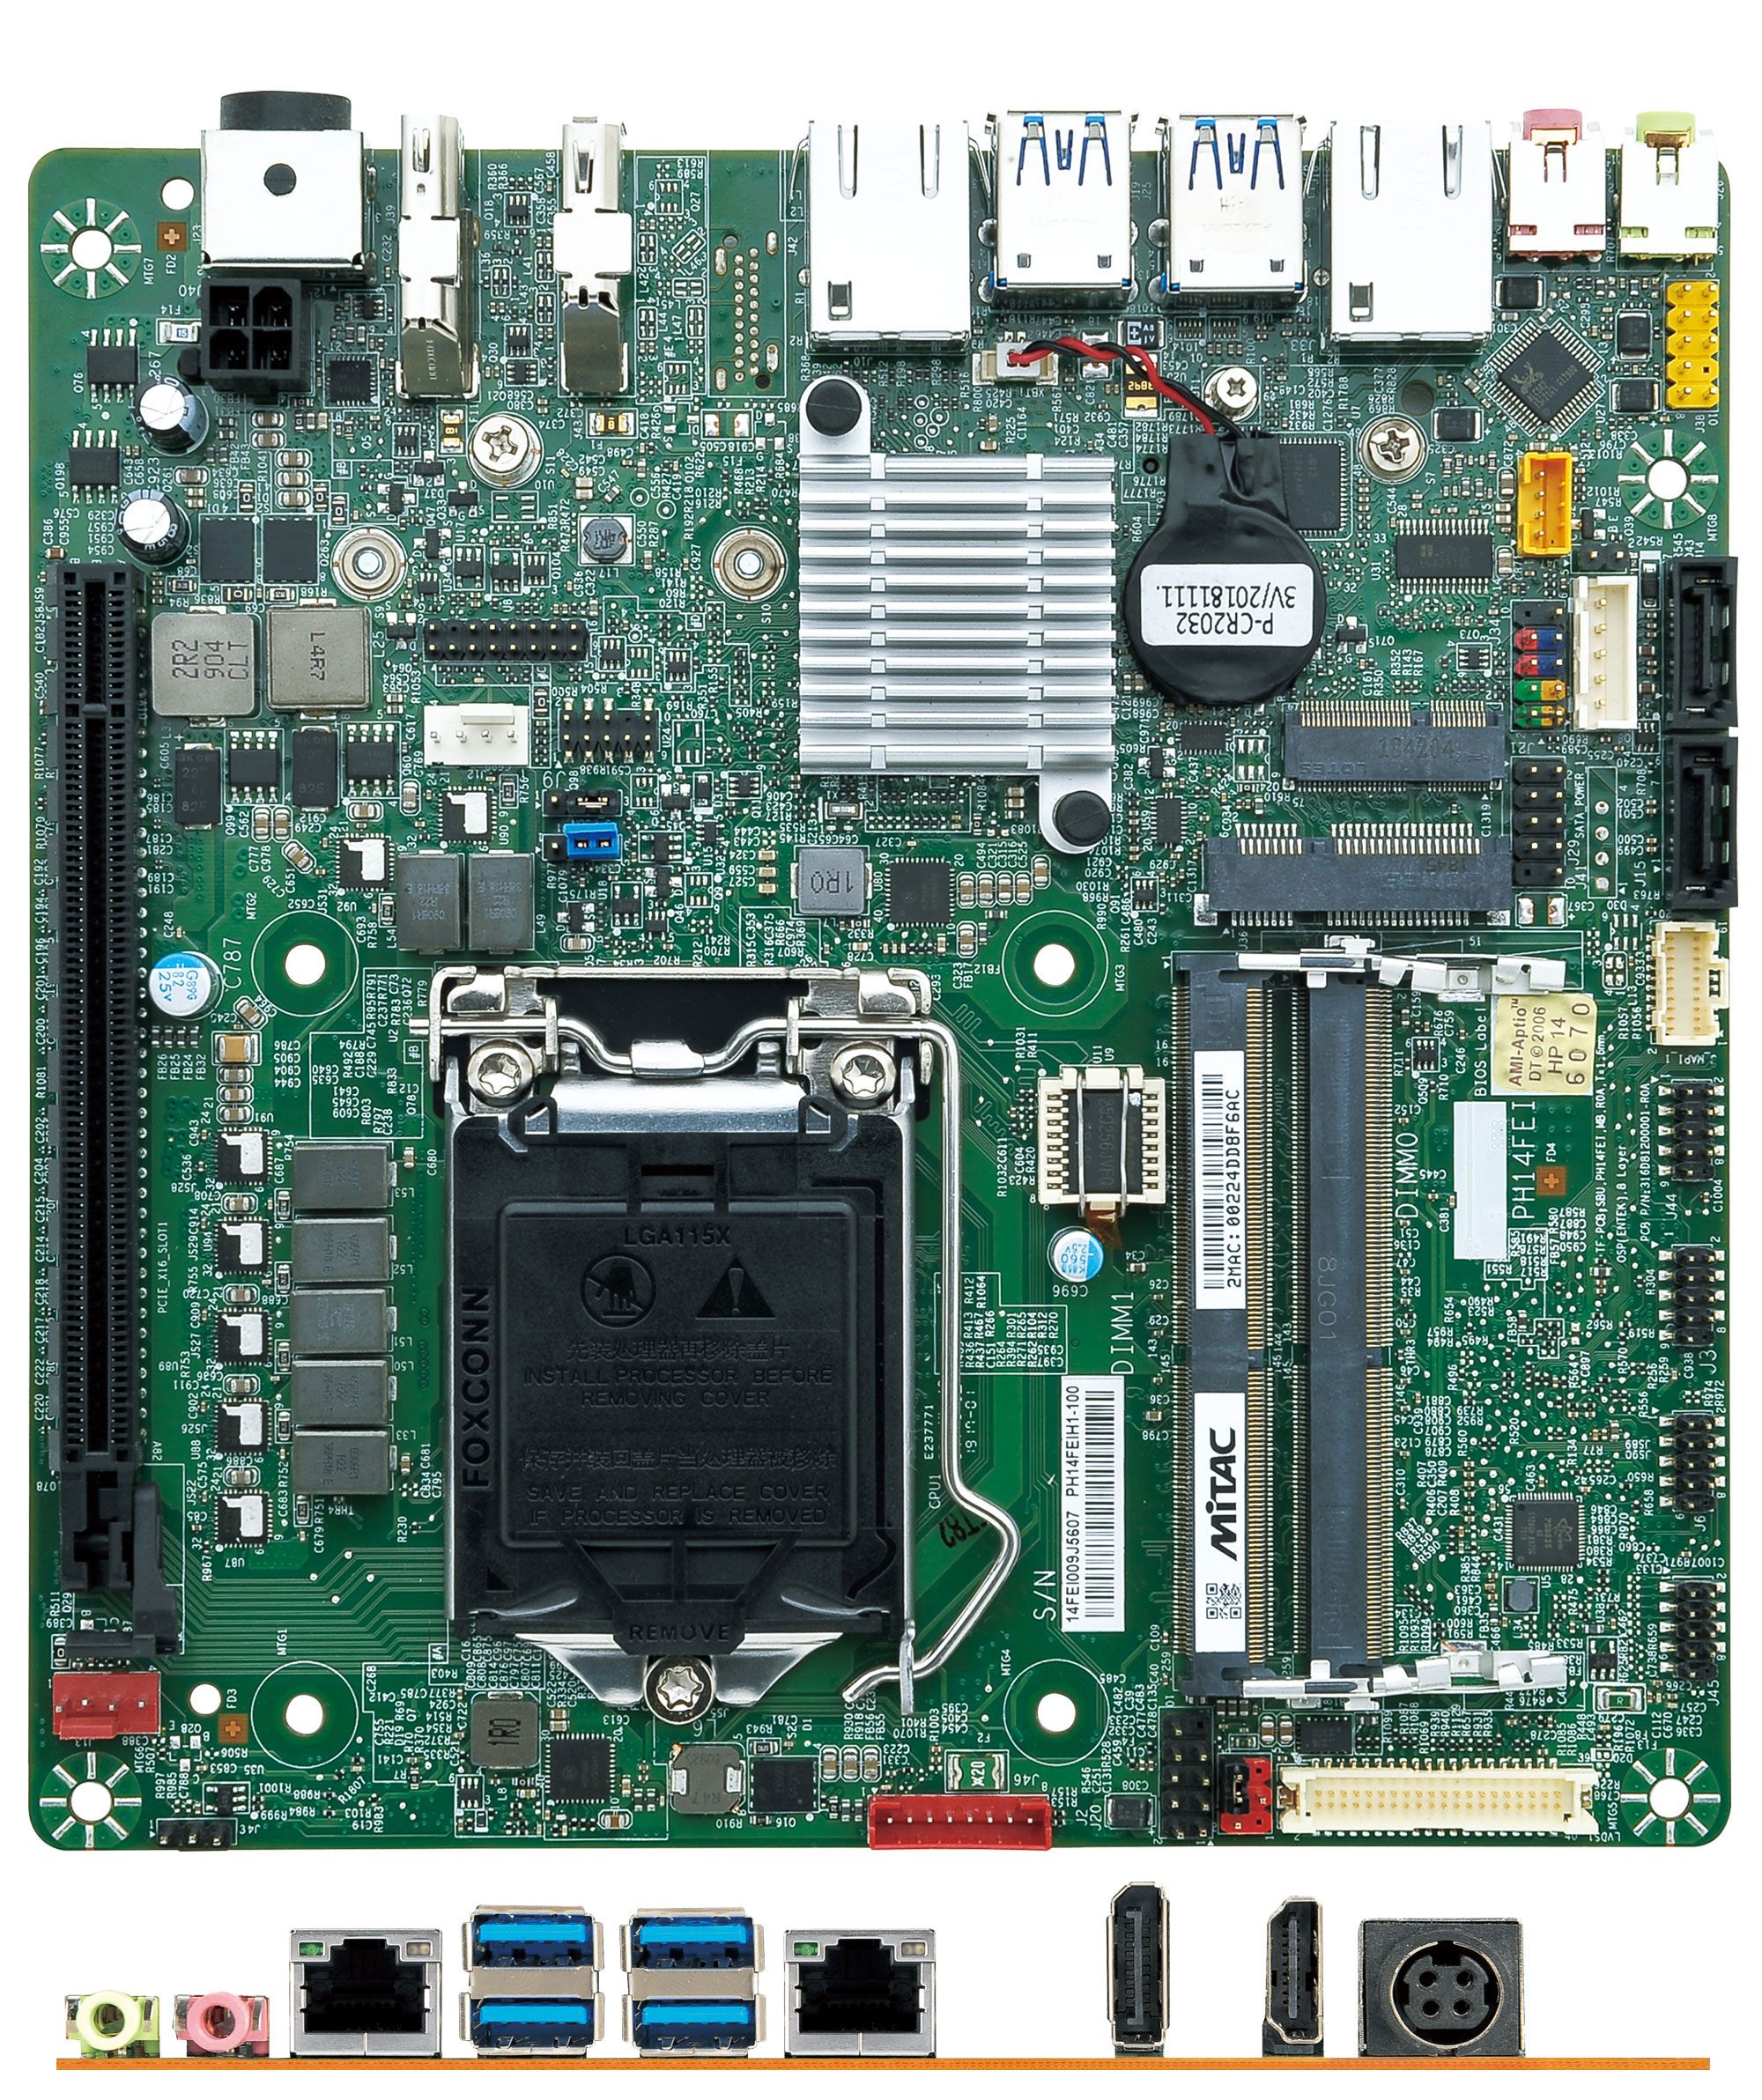 Mitac PH14FEI-H310-12V Thin-ITX (Intel H310, LGA1151 Coffee Lake)